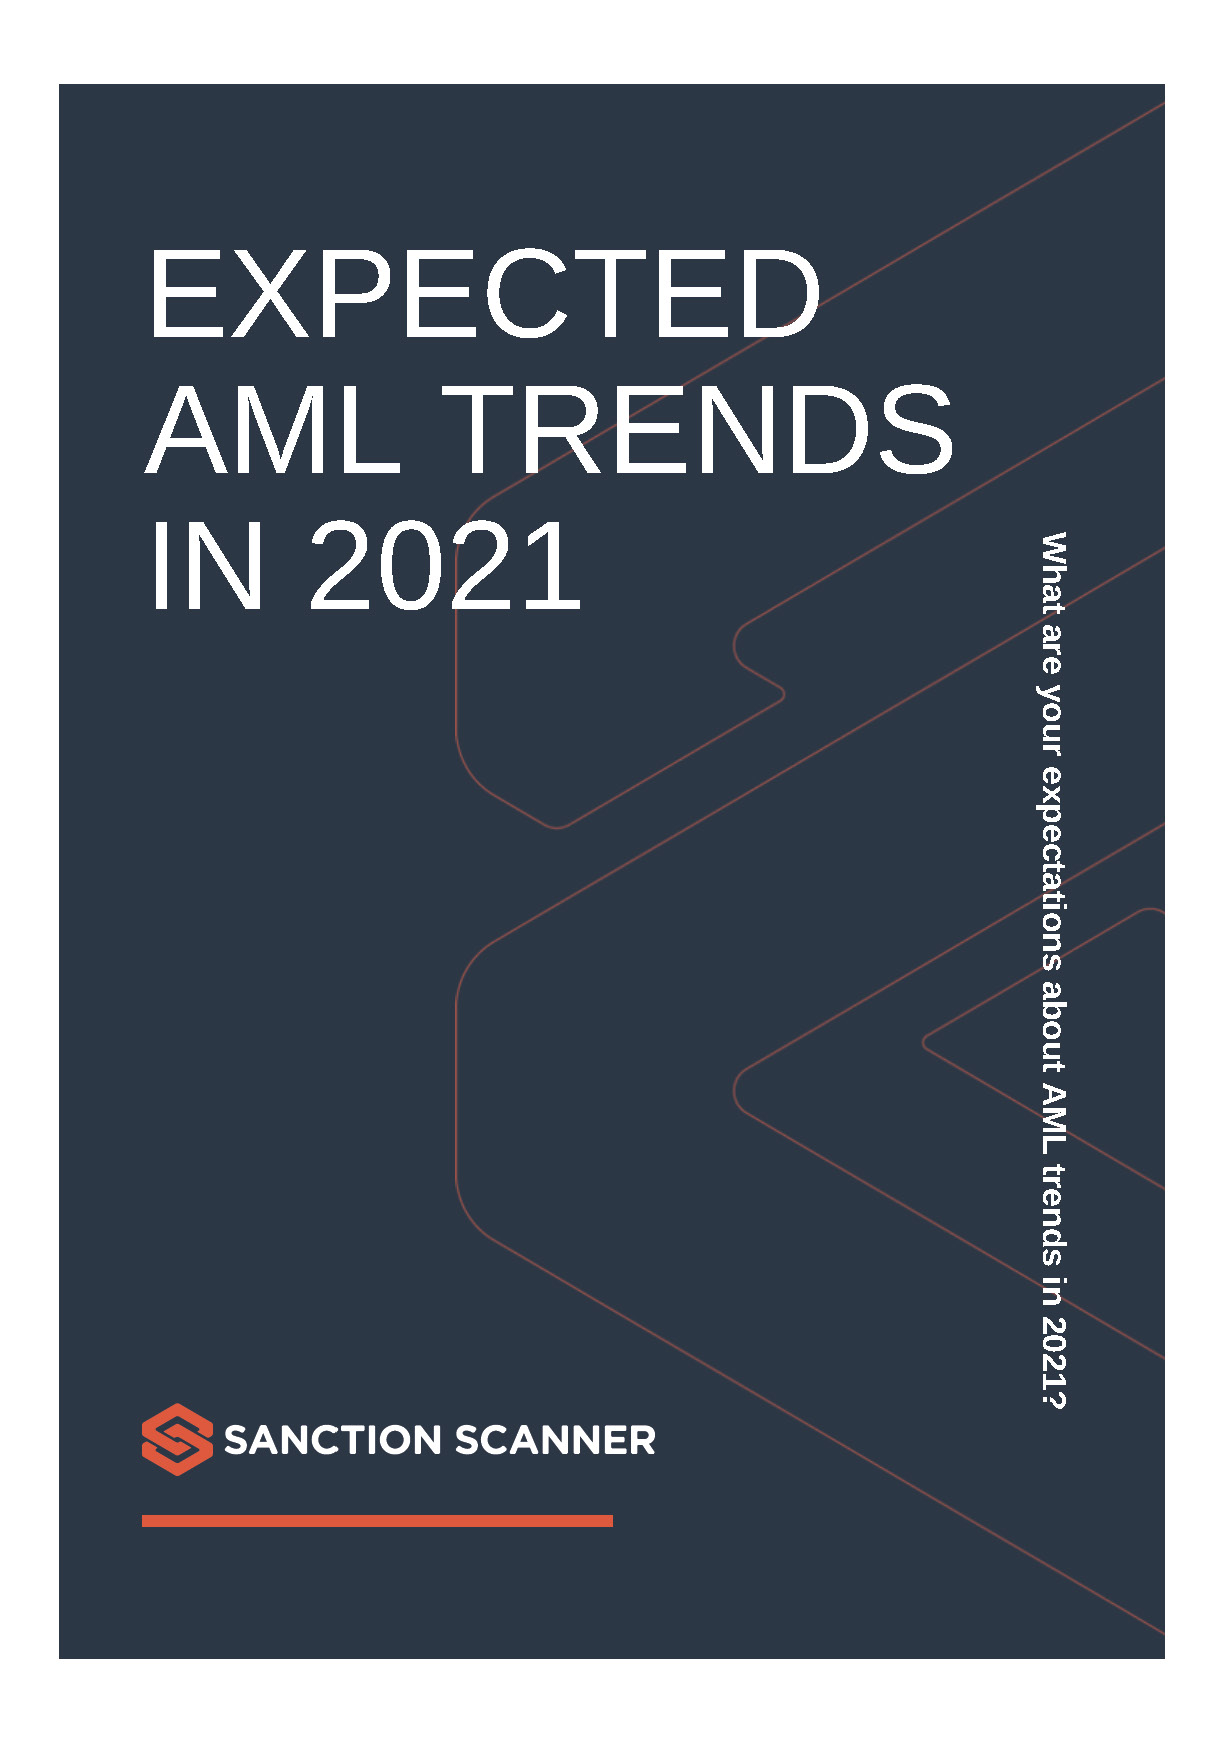 2021 AML Trend Foresights for 28 Experts from 17 Different Countries 45